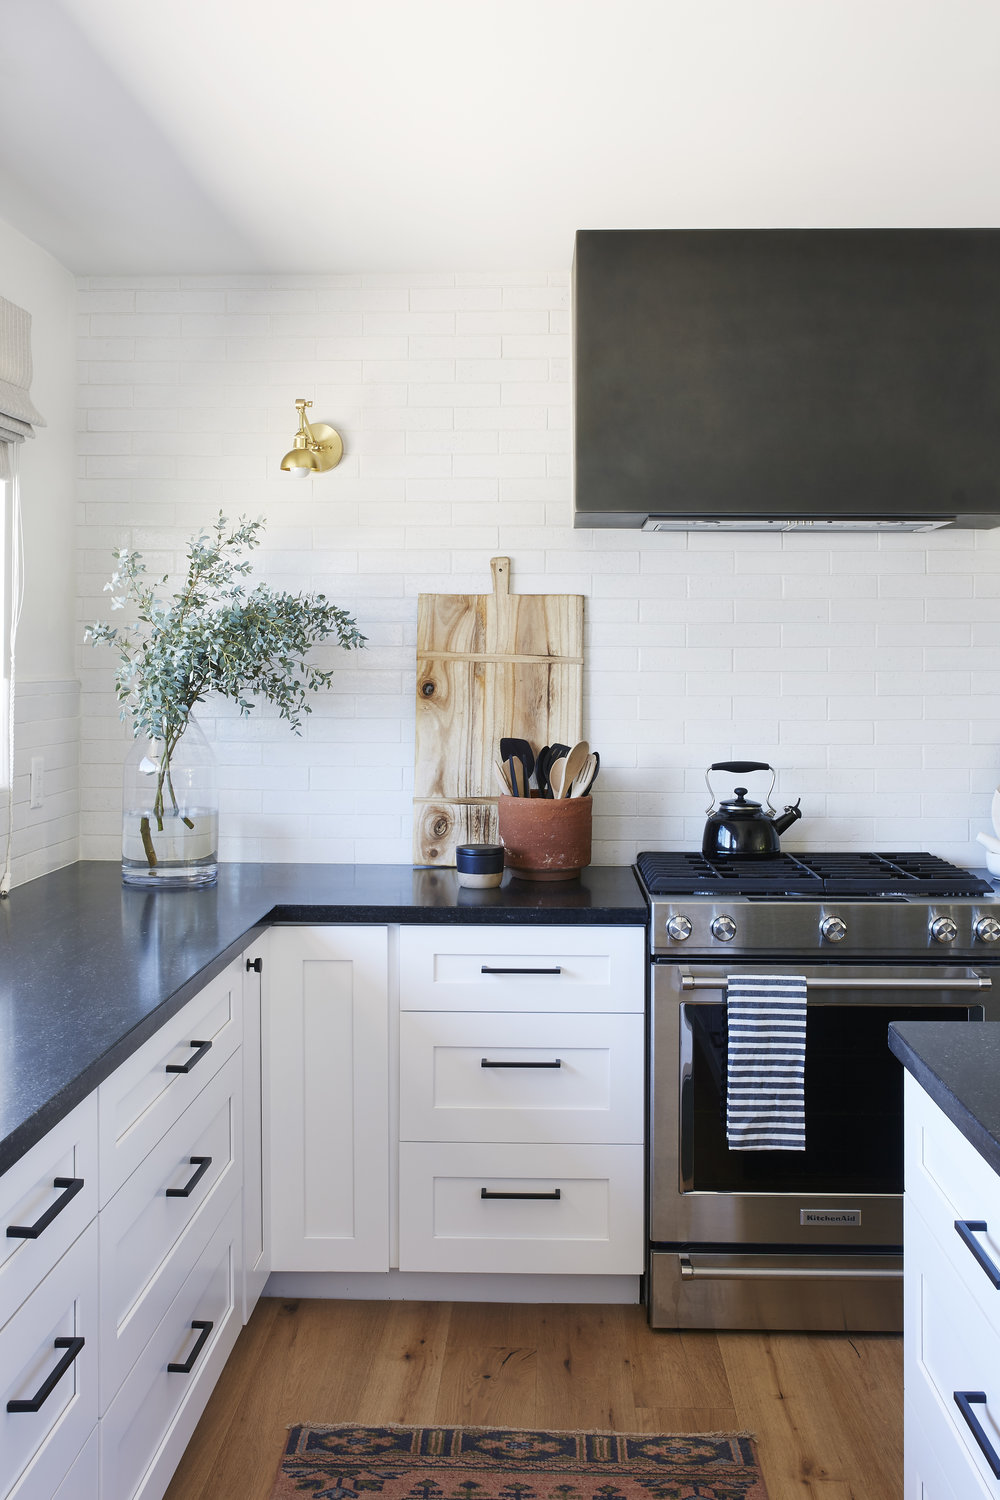 casey mason interiors | kitchen